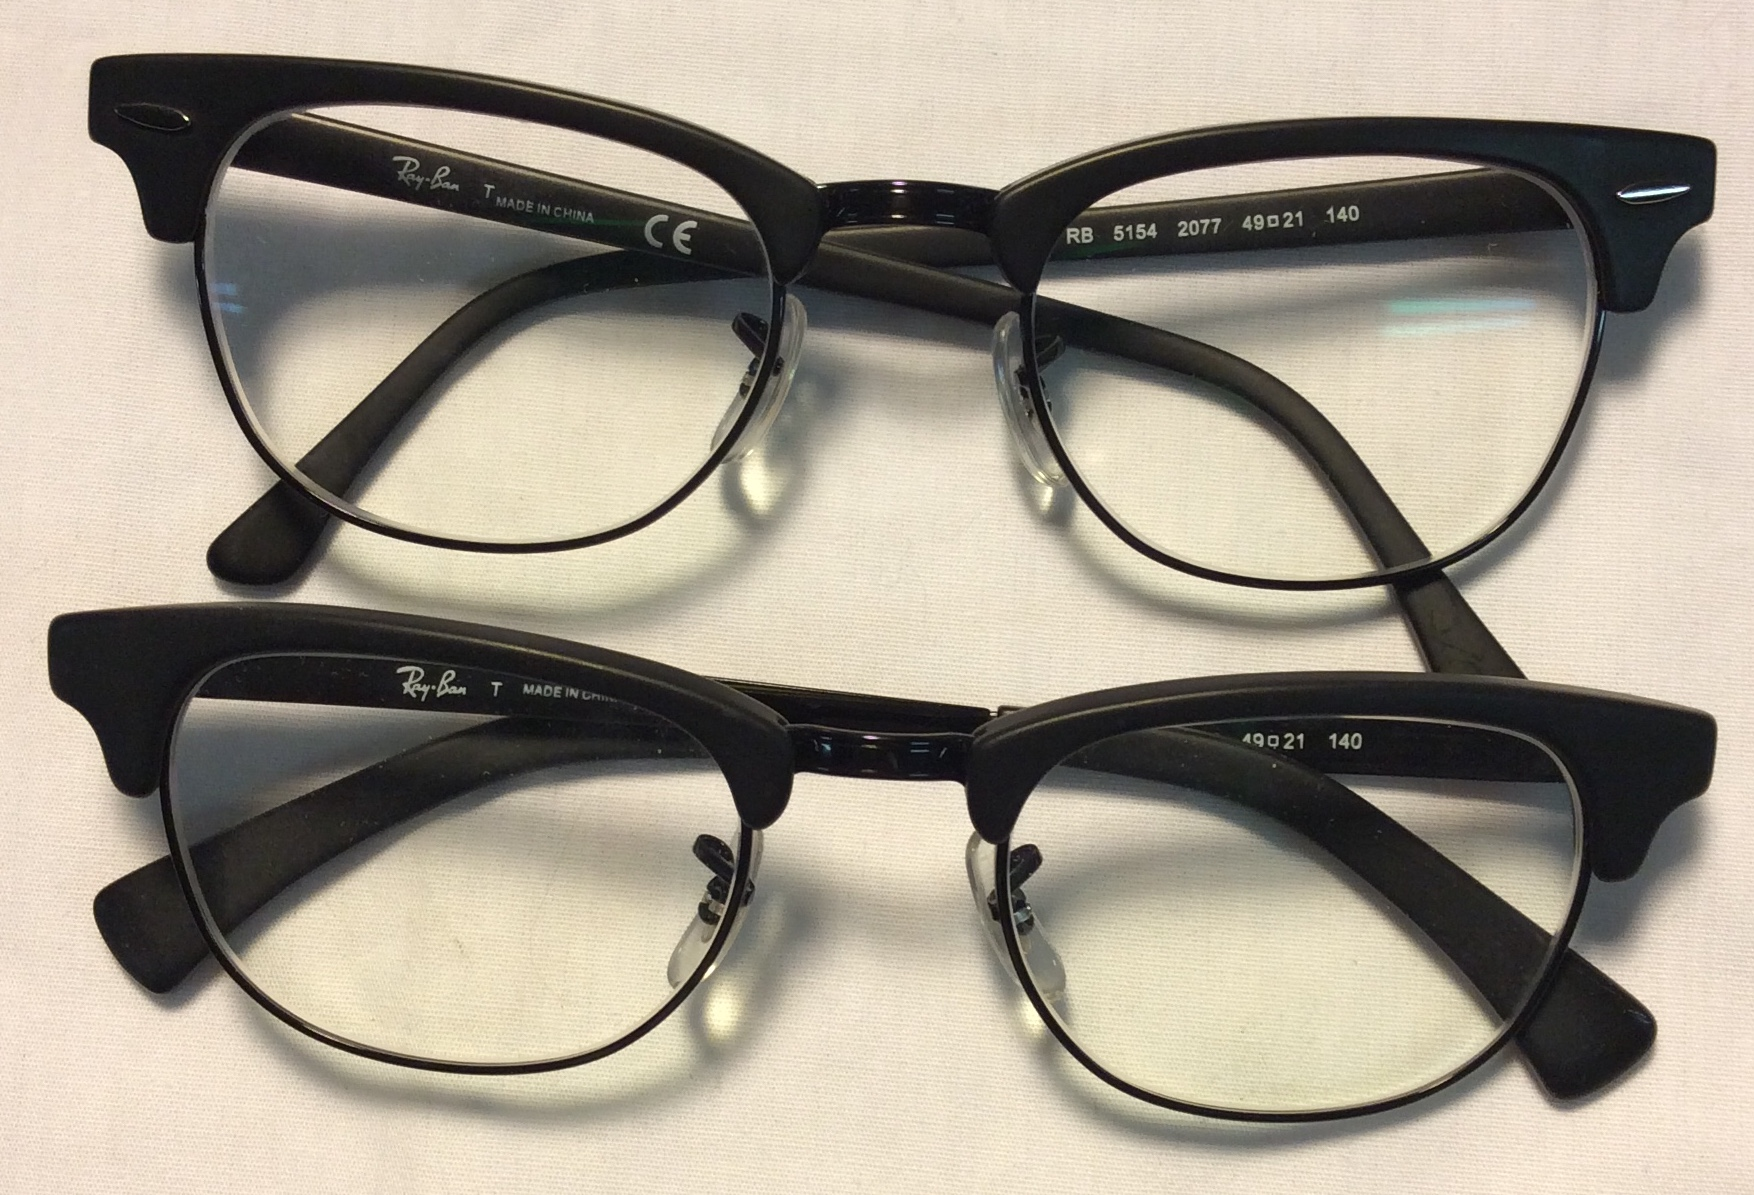 Ray-Ban Black/charcoal plastic frame